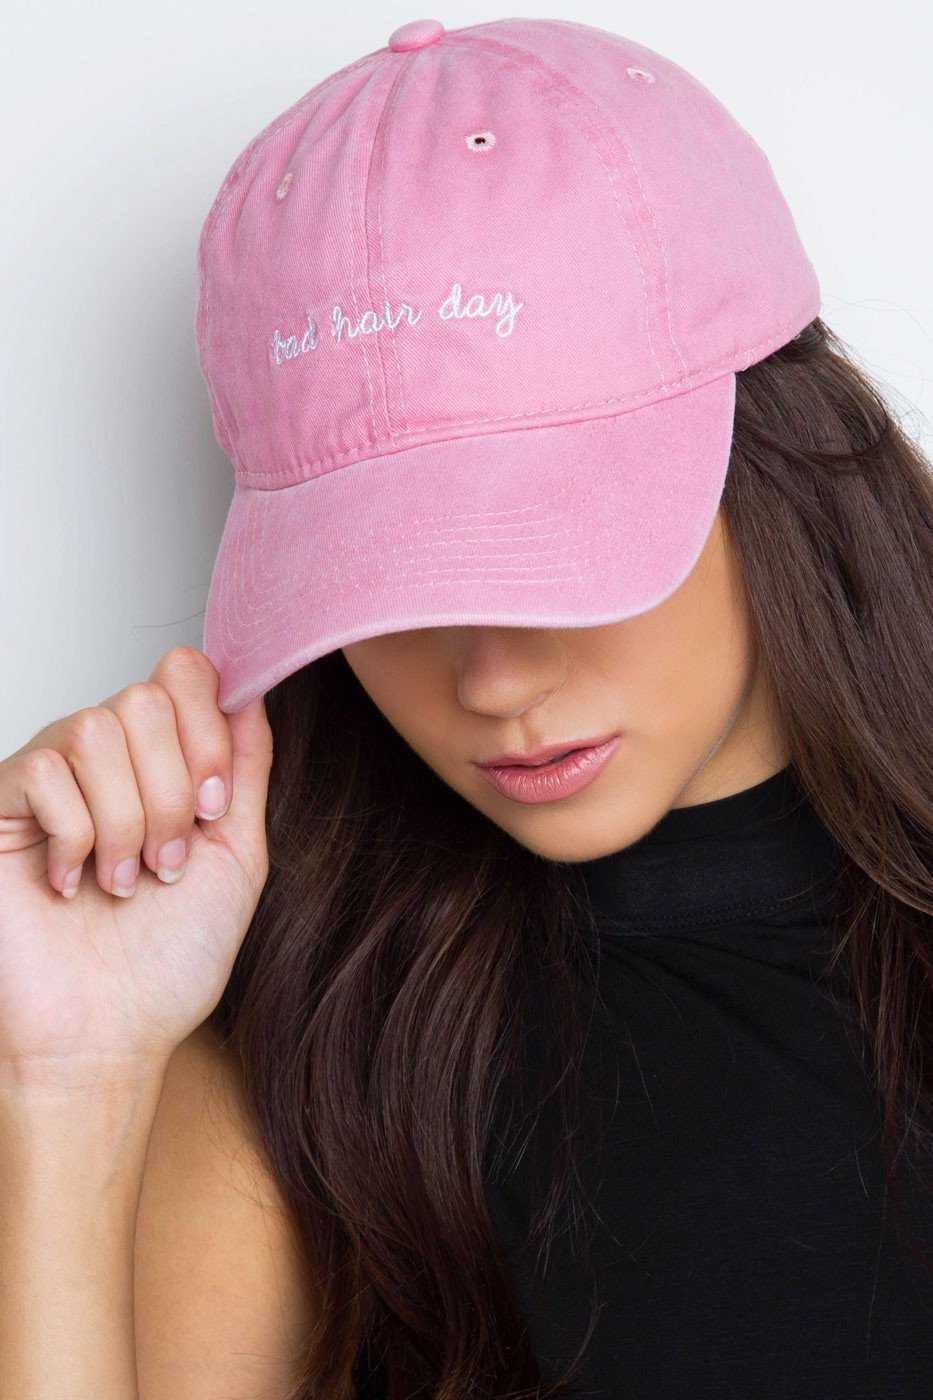 bde4588052268 Bad Hair Day Baseball Cap - Blush